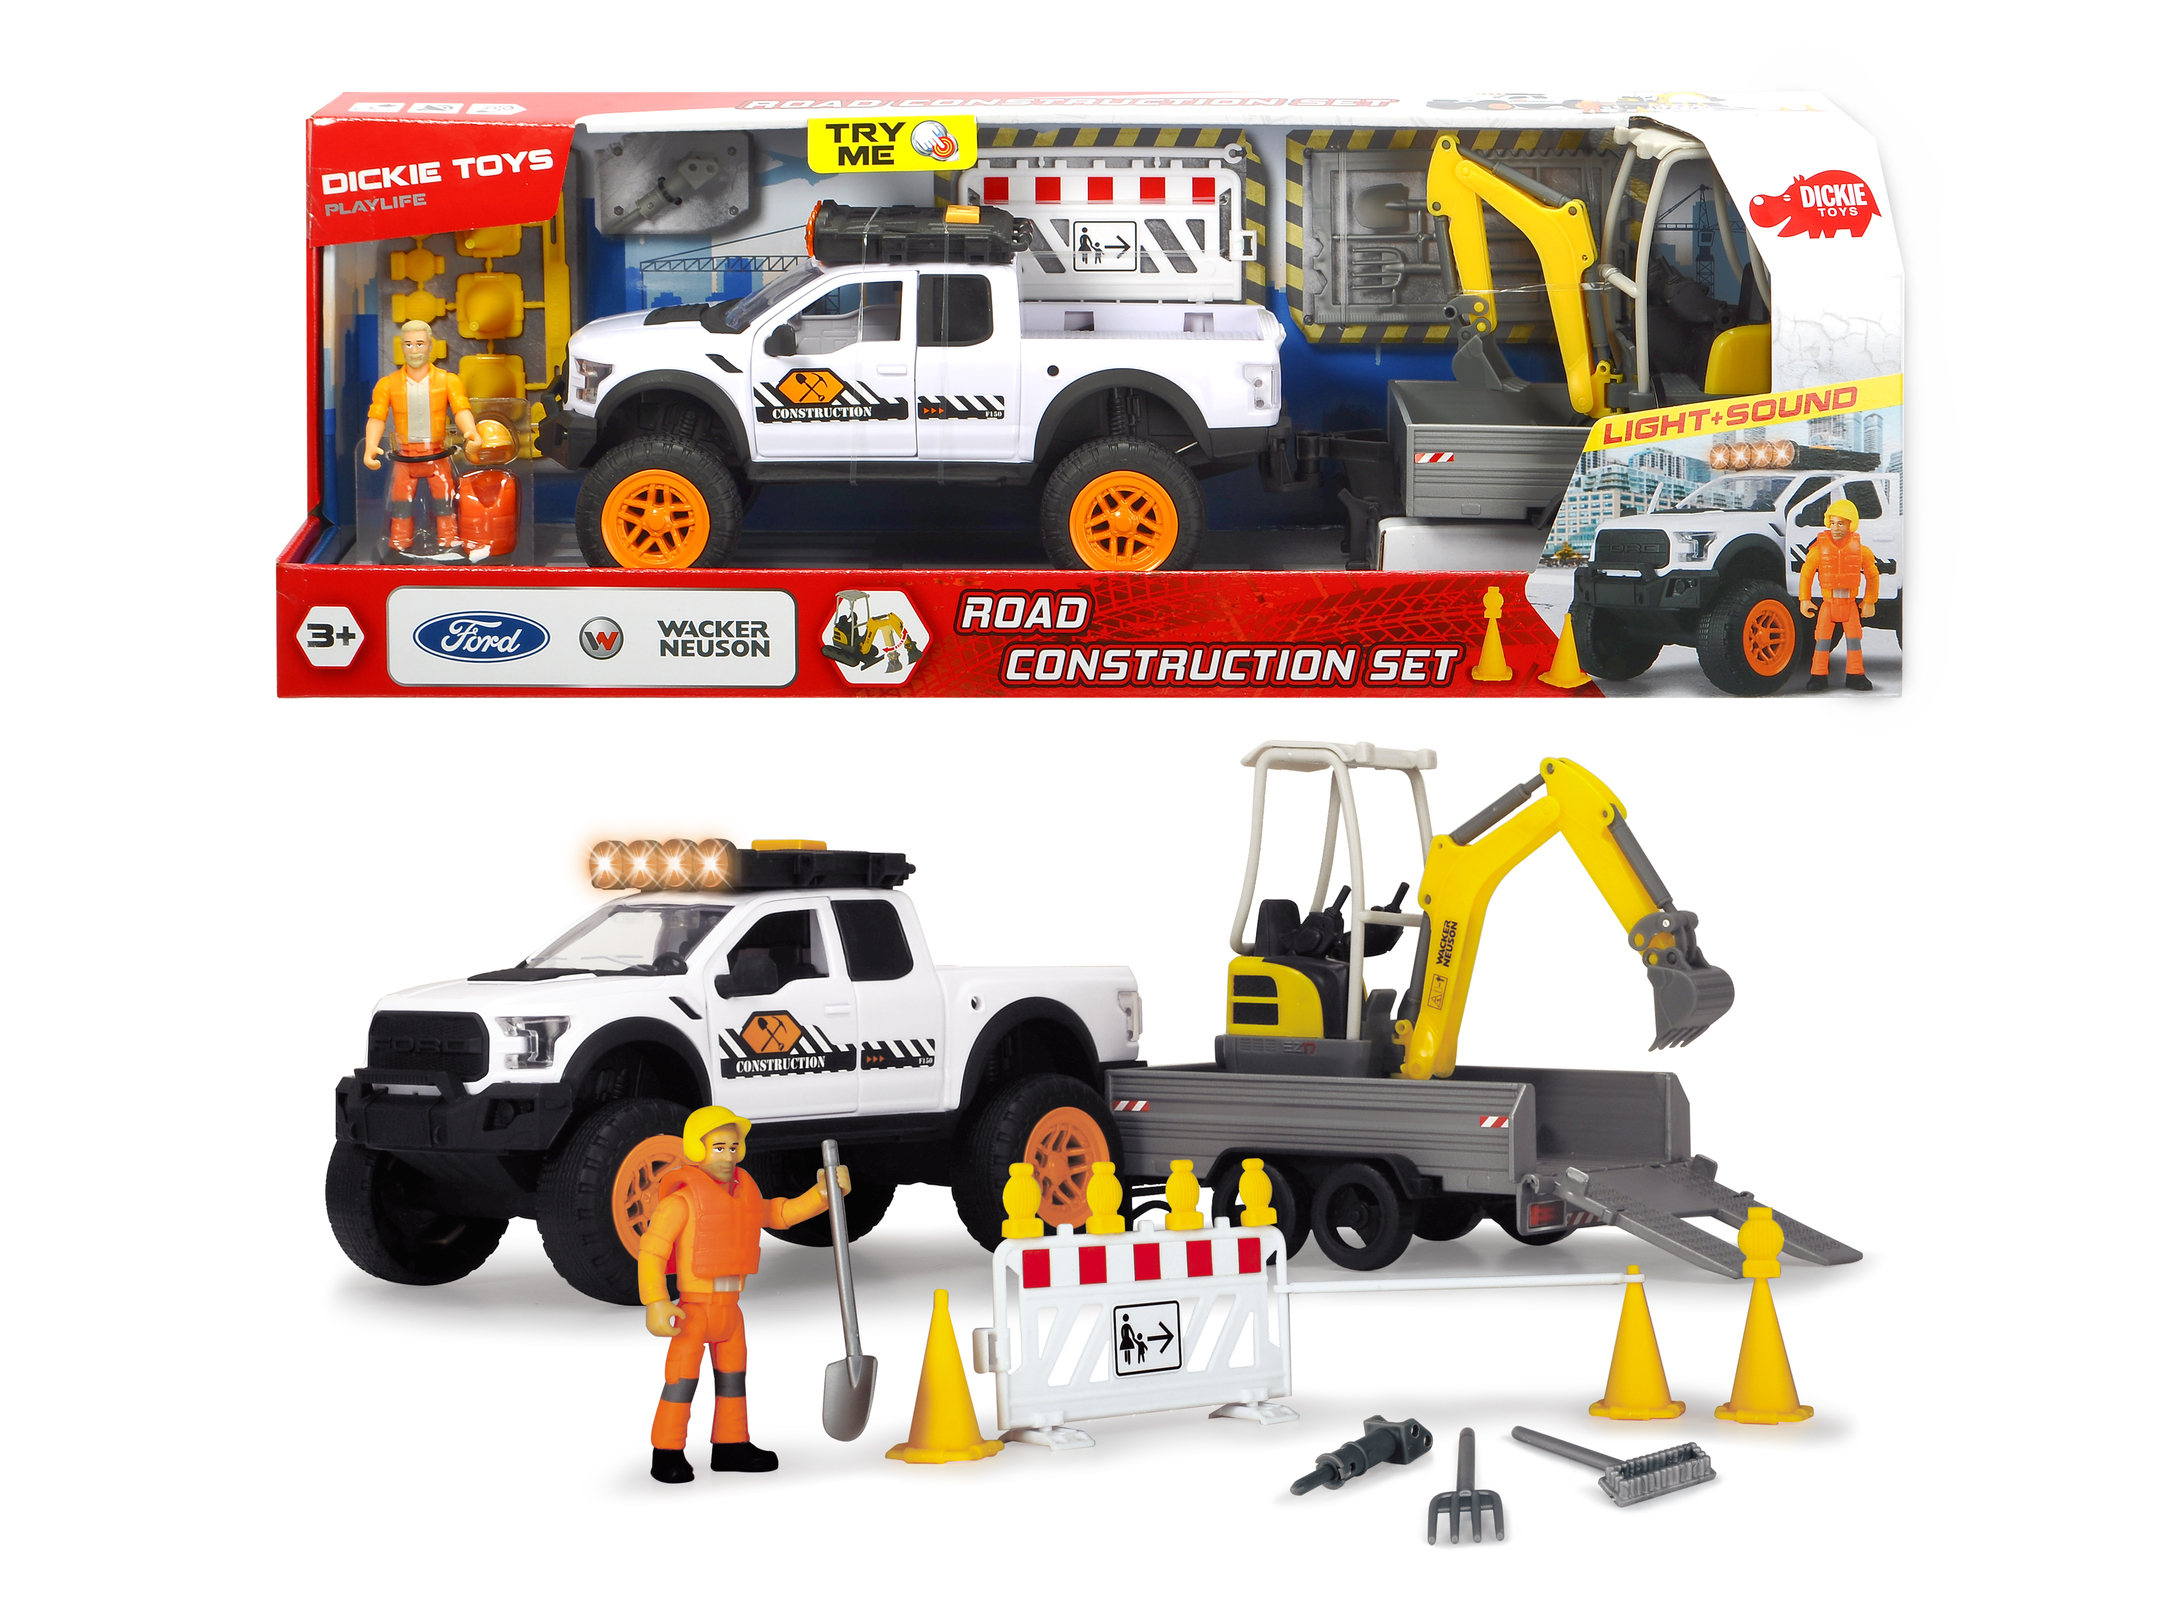 Playlife - Road Construction Set